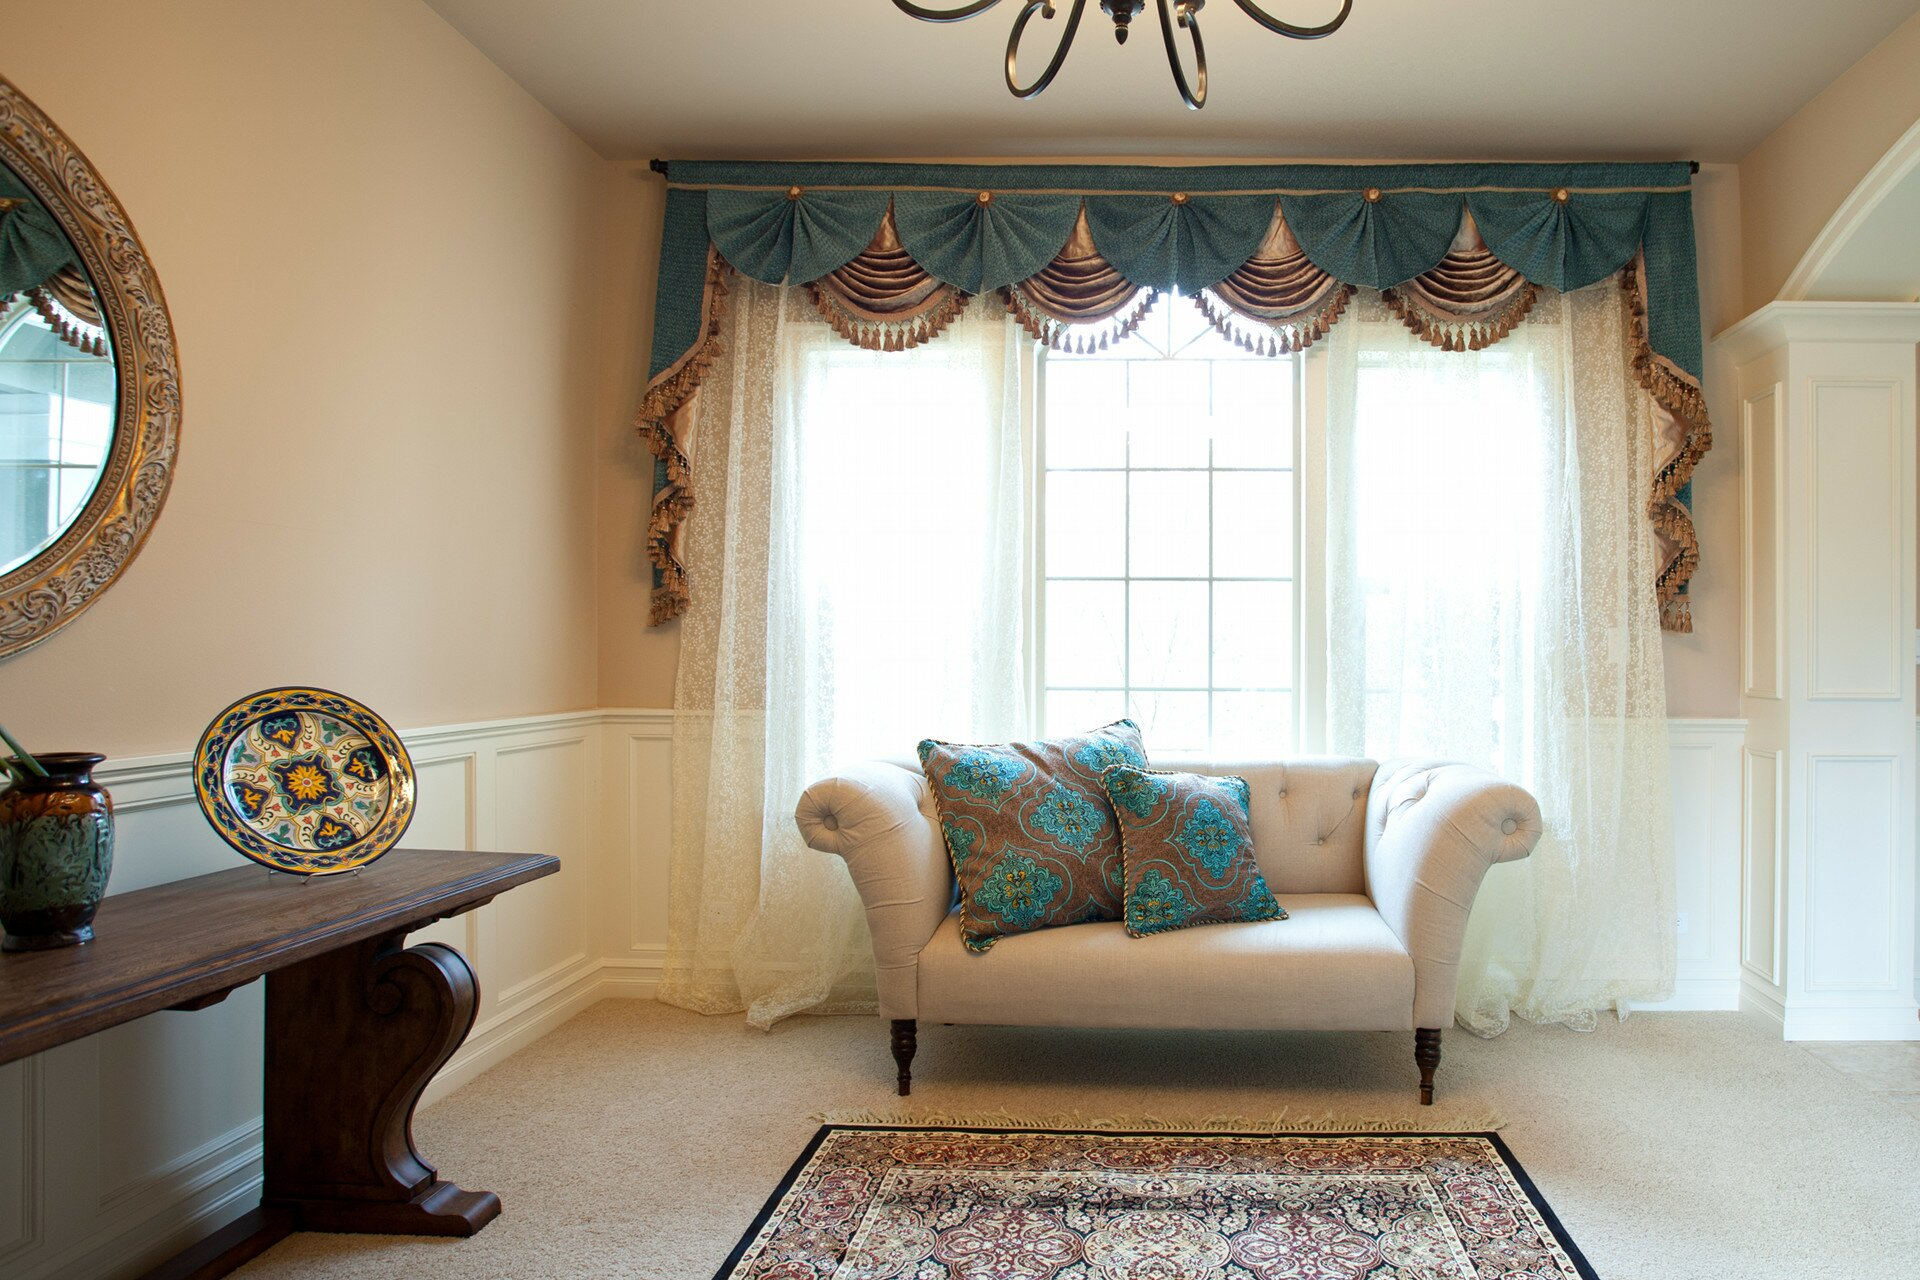 Living Room Valances | Curtain Valances for Living Room | Valance Curtains for Bedroom